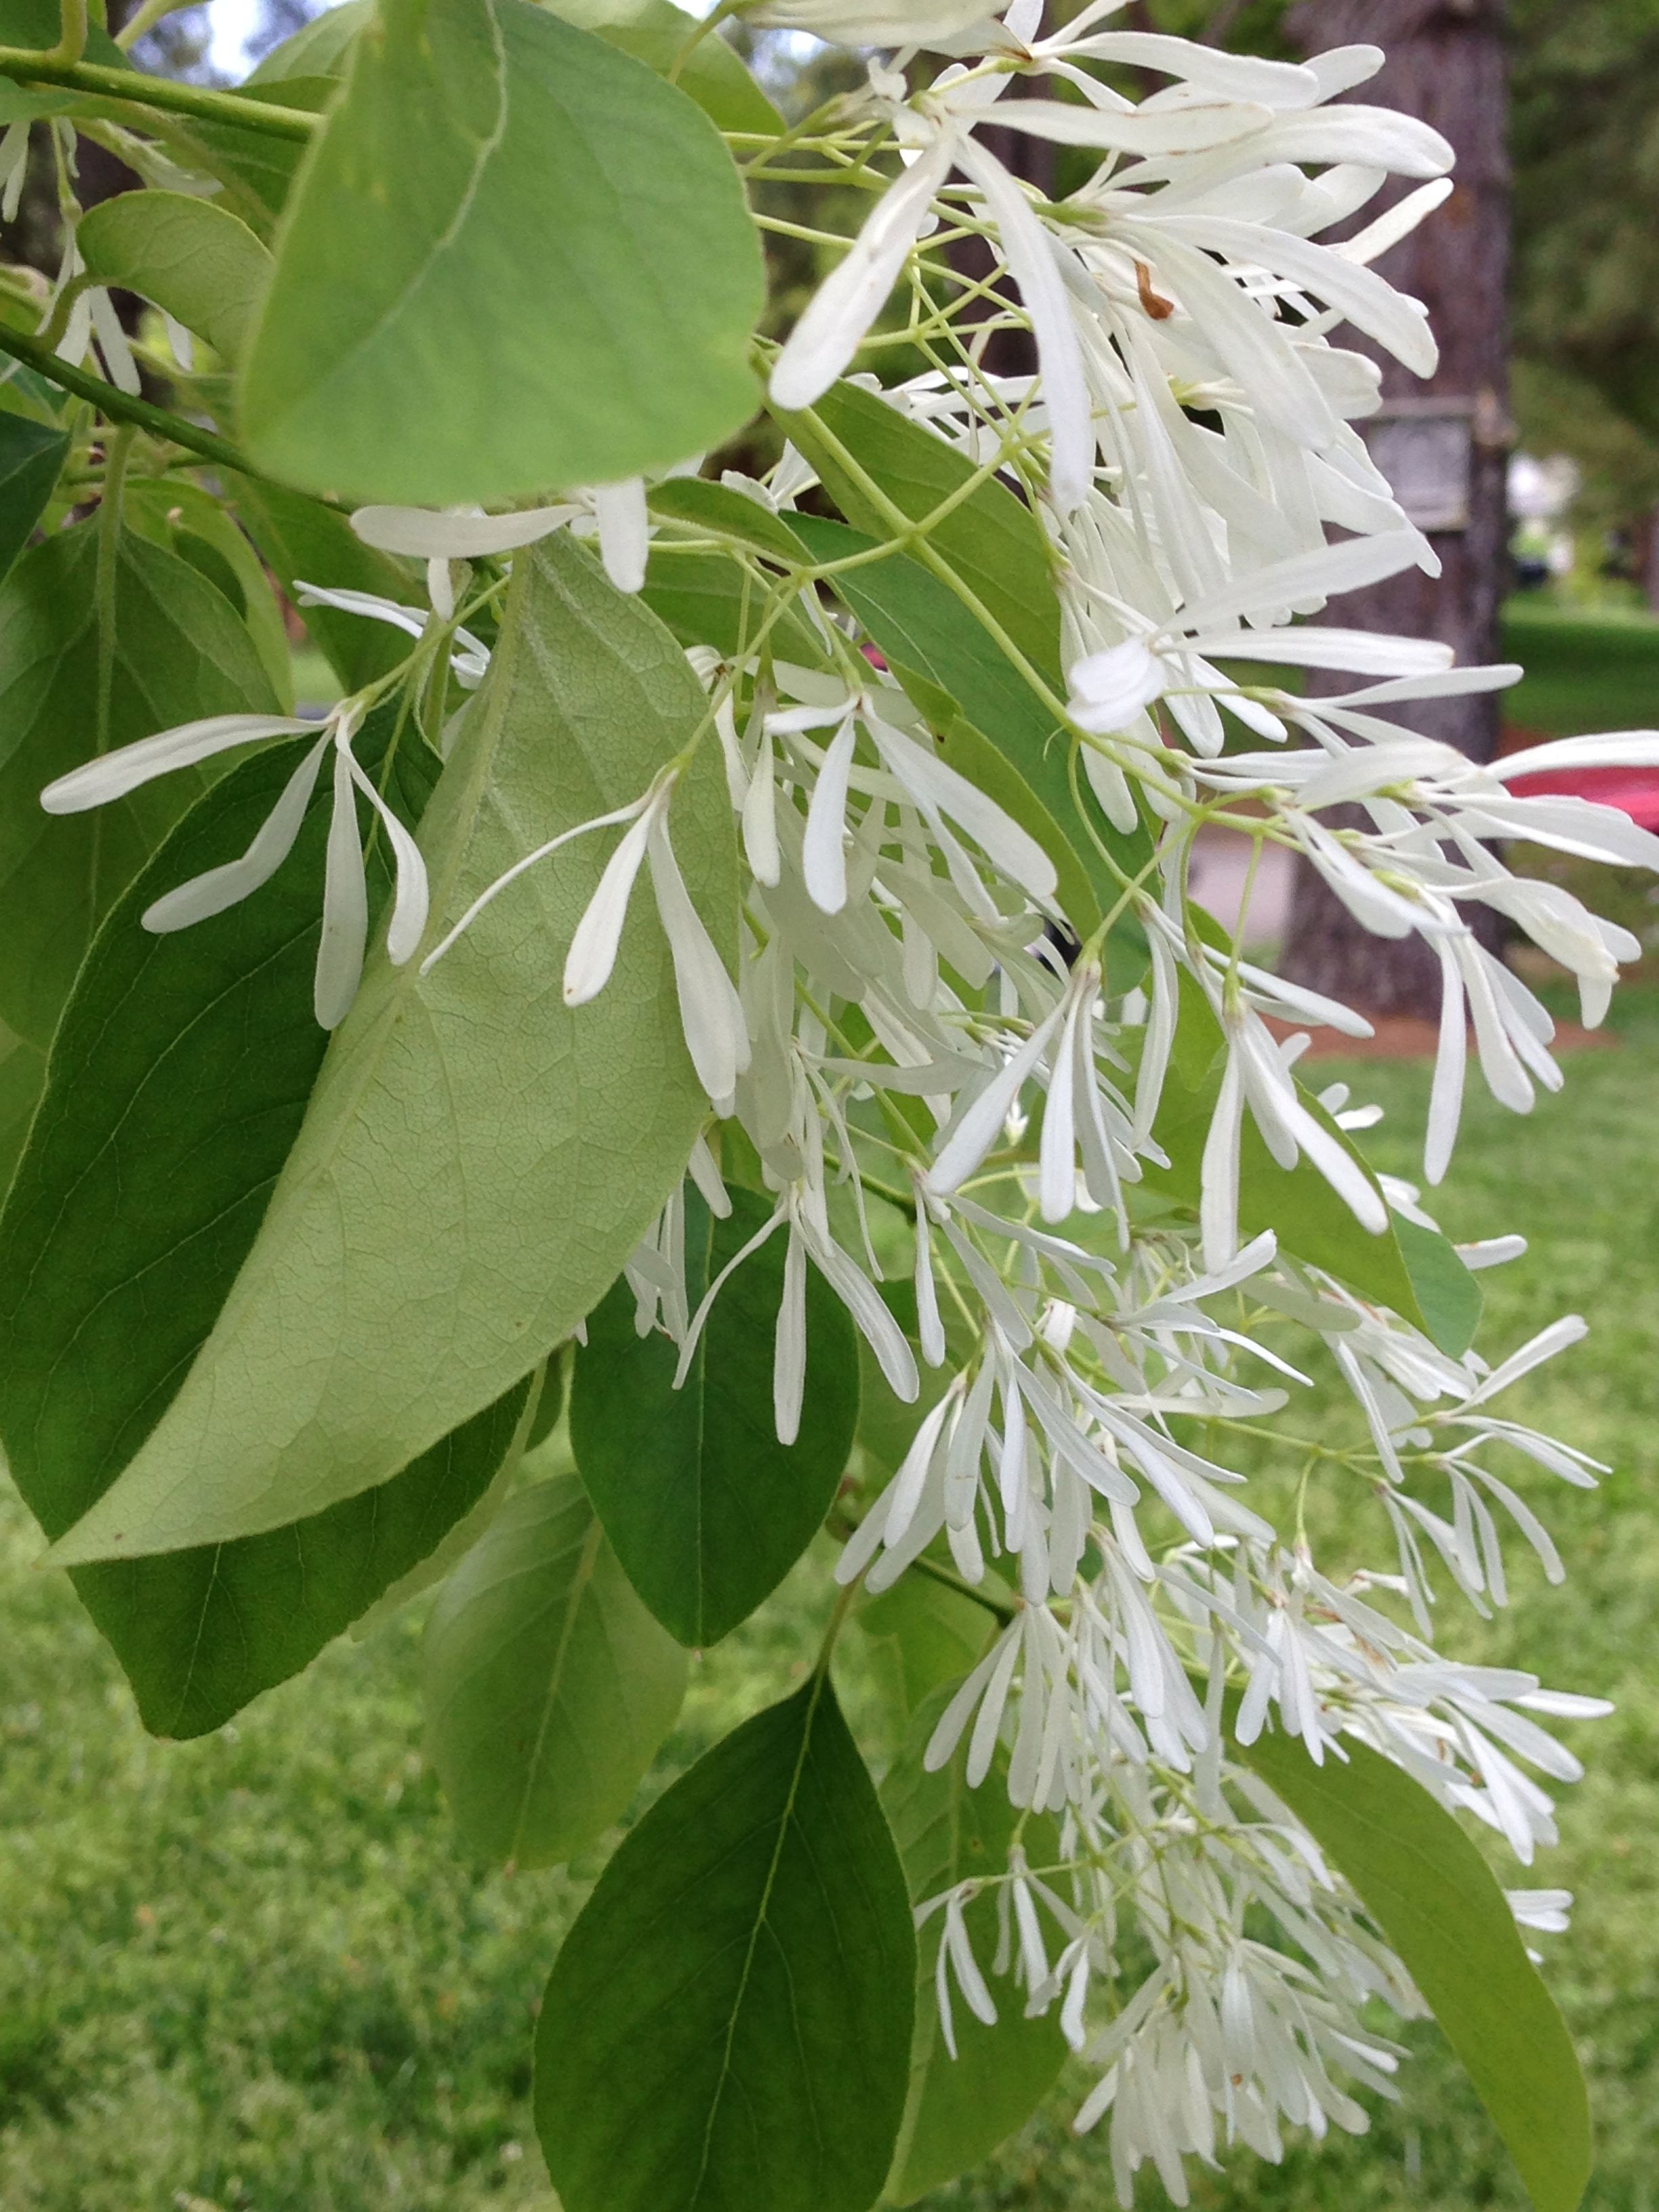 Chinese Fringe Tree One Of My Most Favorite Trees I Love The